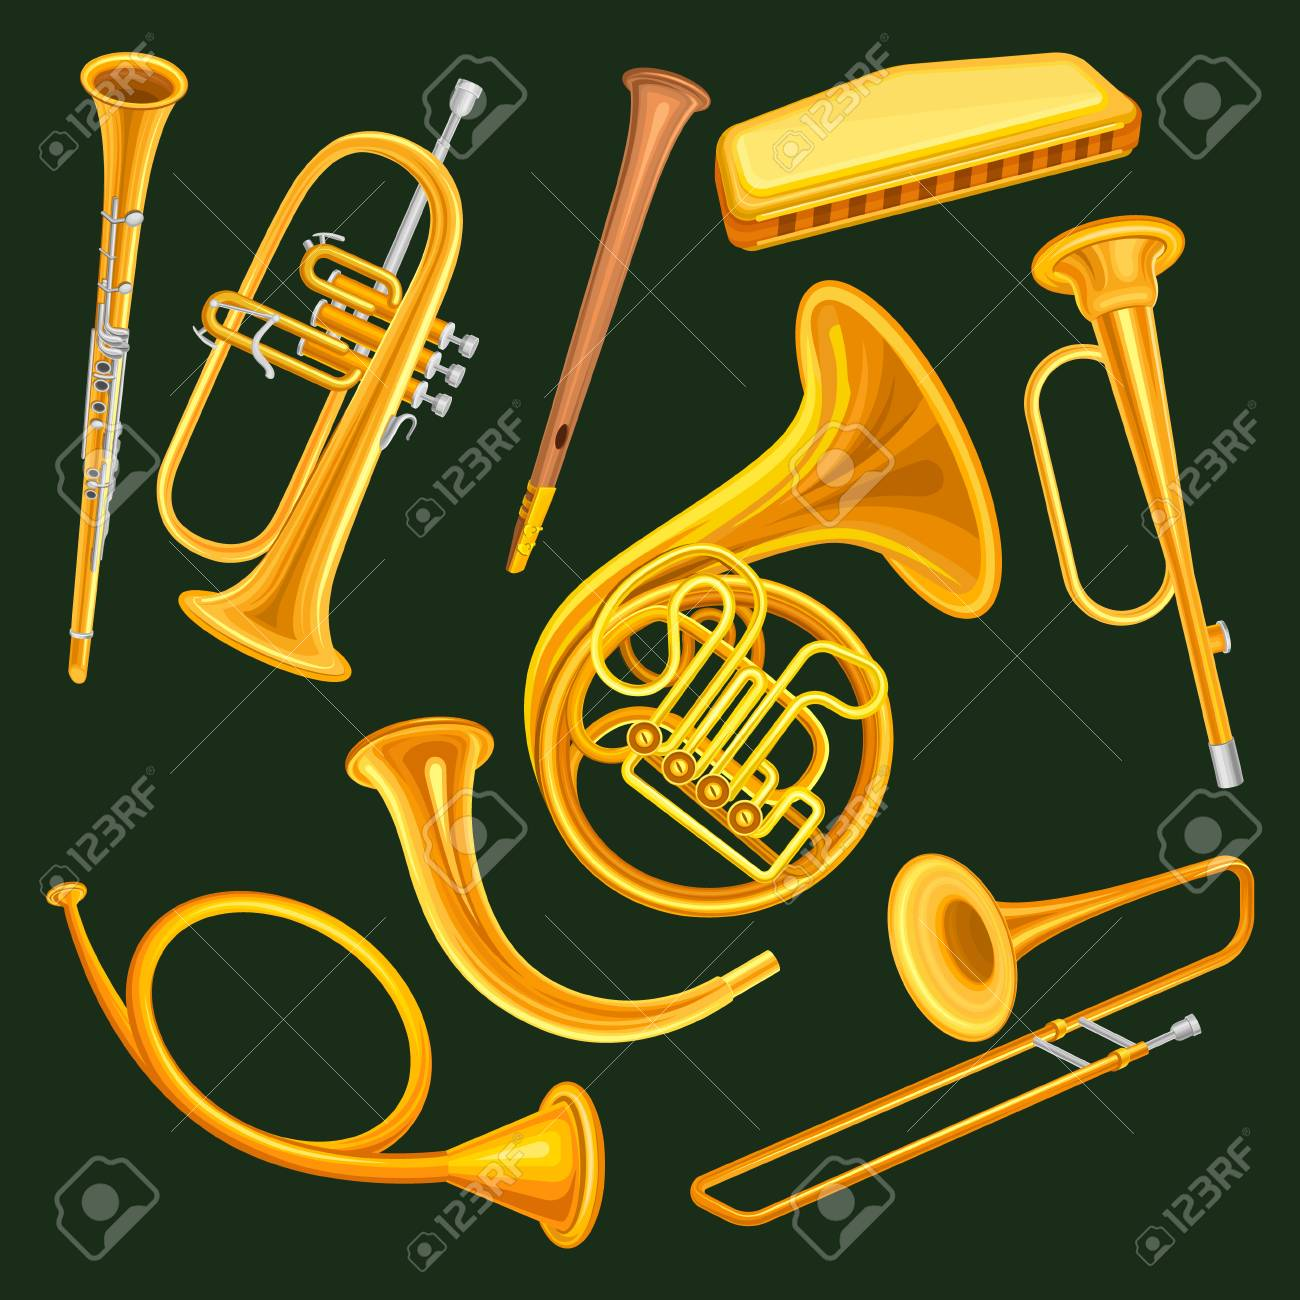 Collection of woodwind and brass musical instruments. Clarinet, trumpet, harmonica, wooden pipe sopilka , french horn, hunting horns, trompette, trombone. Isolated vector illustration in flat style. - 95409576